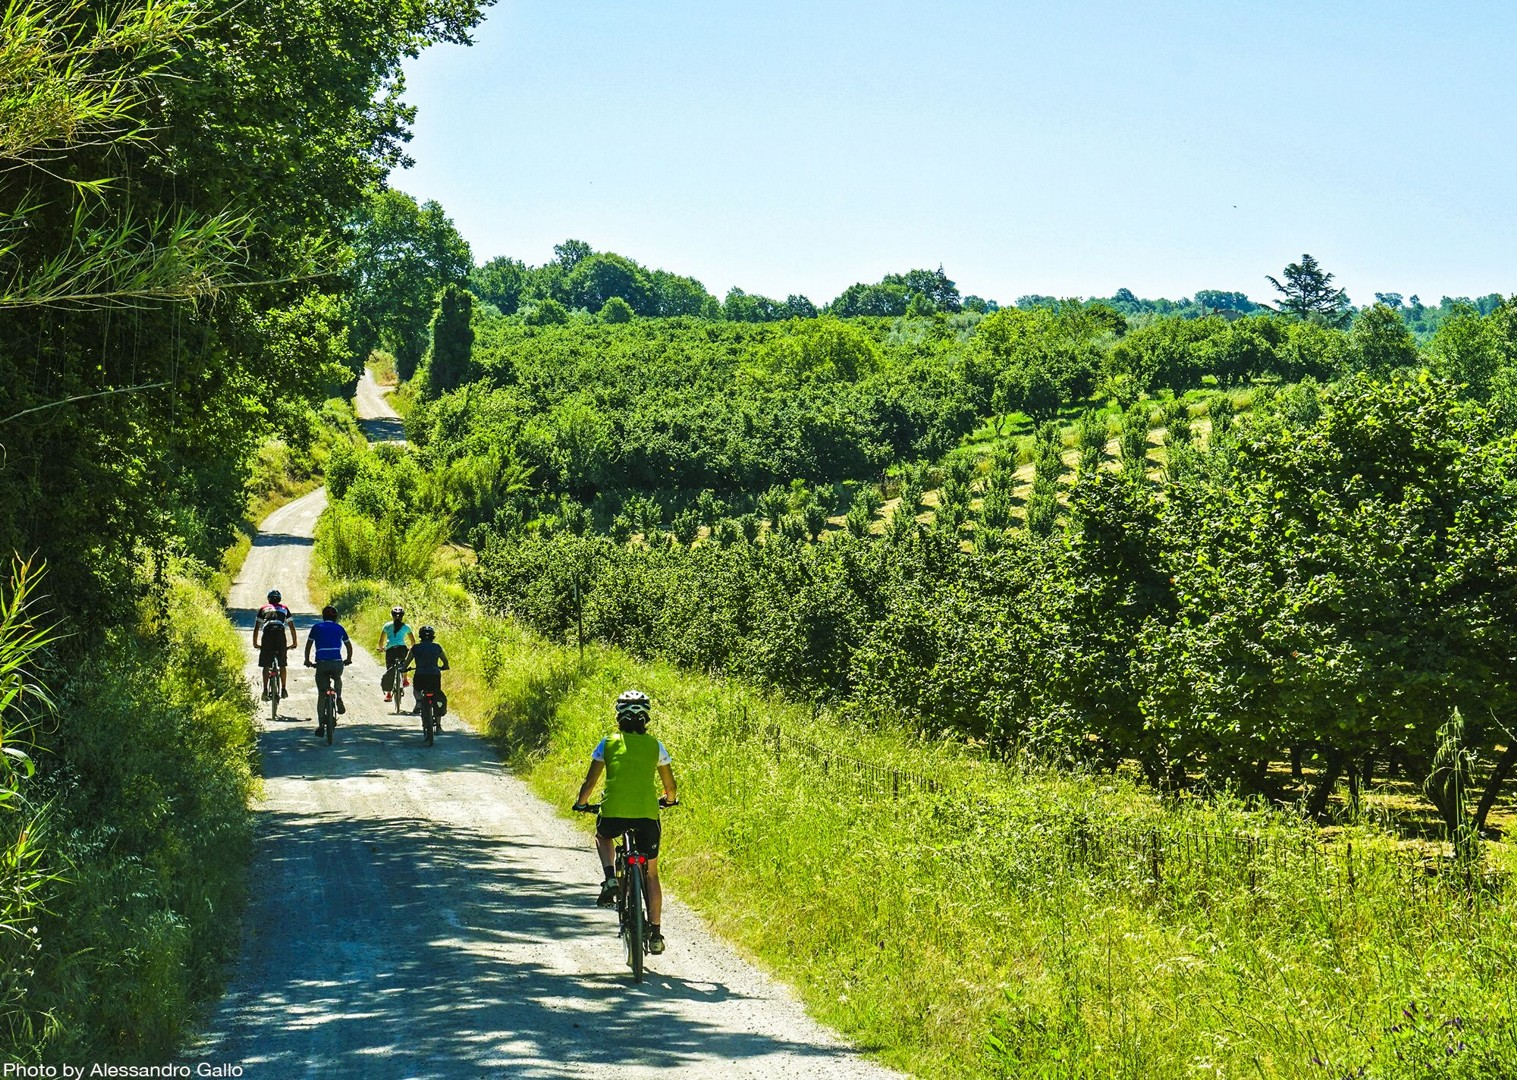 fun-happy-cycle-holiday-picturesque-tuscany-italy-saddle-skedaddle.jpg - Italy - A Taste of Tuscany - Italia Leisure and Family Cycling